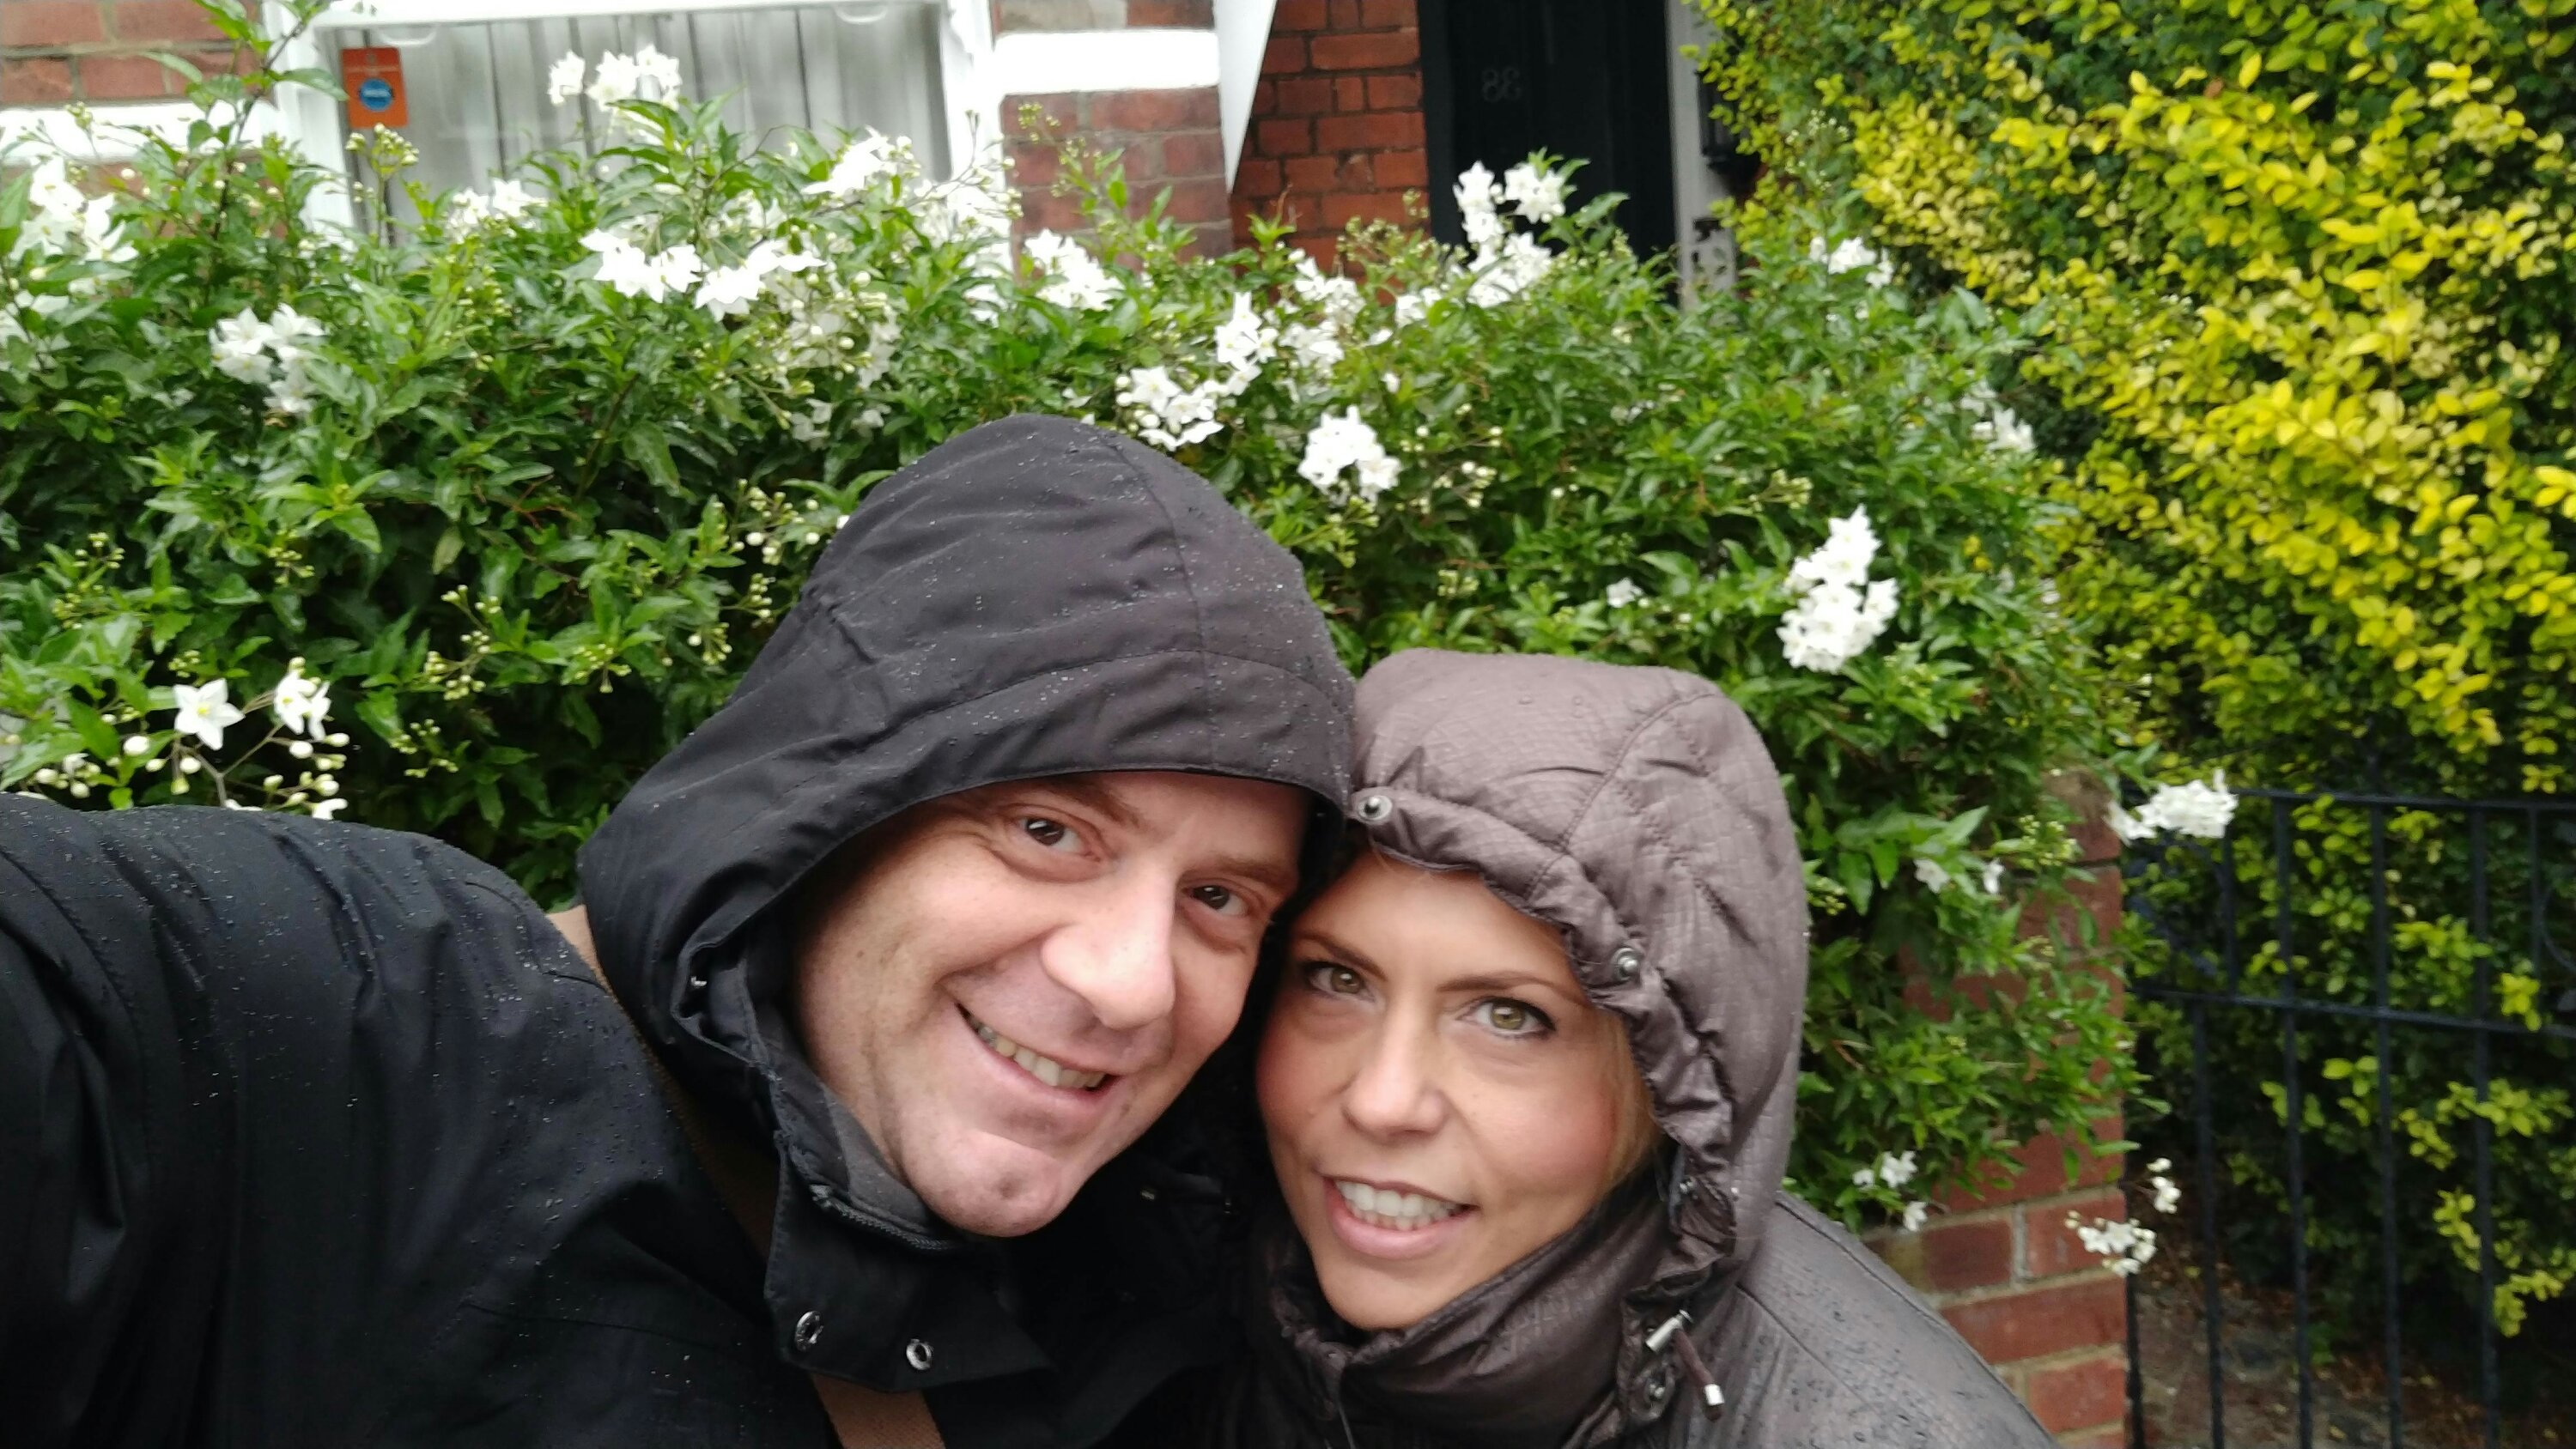 A picture of travel bloggers Crazy Family Travellers wearing hoods in rainy weather